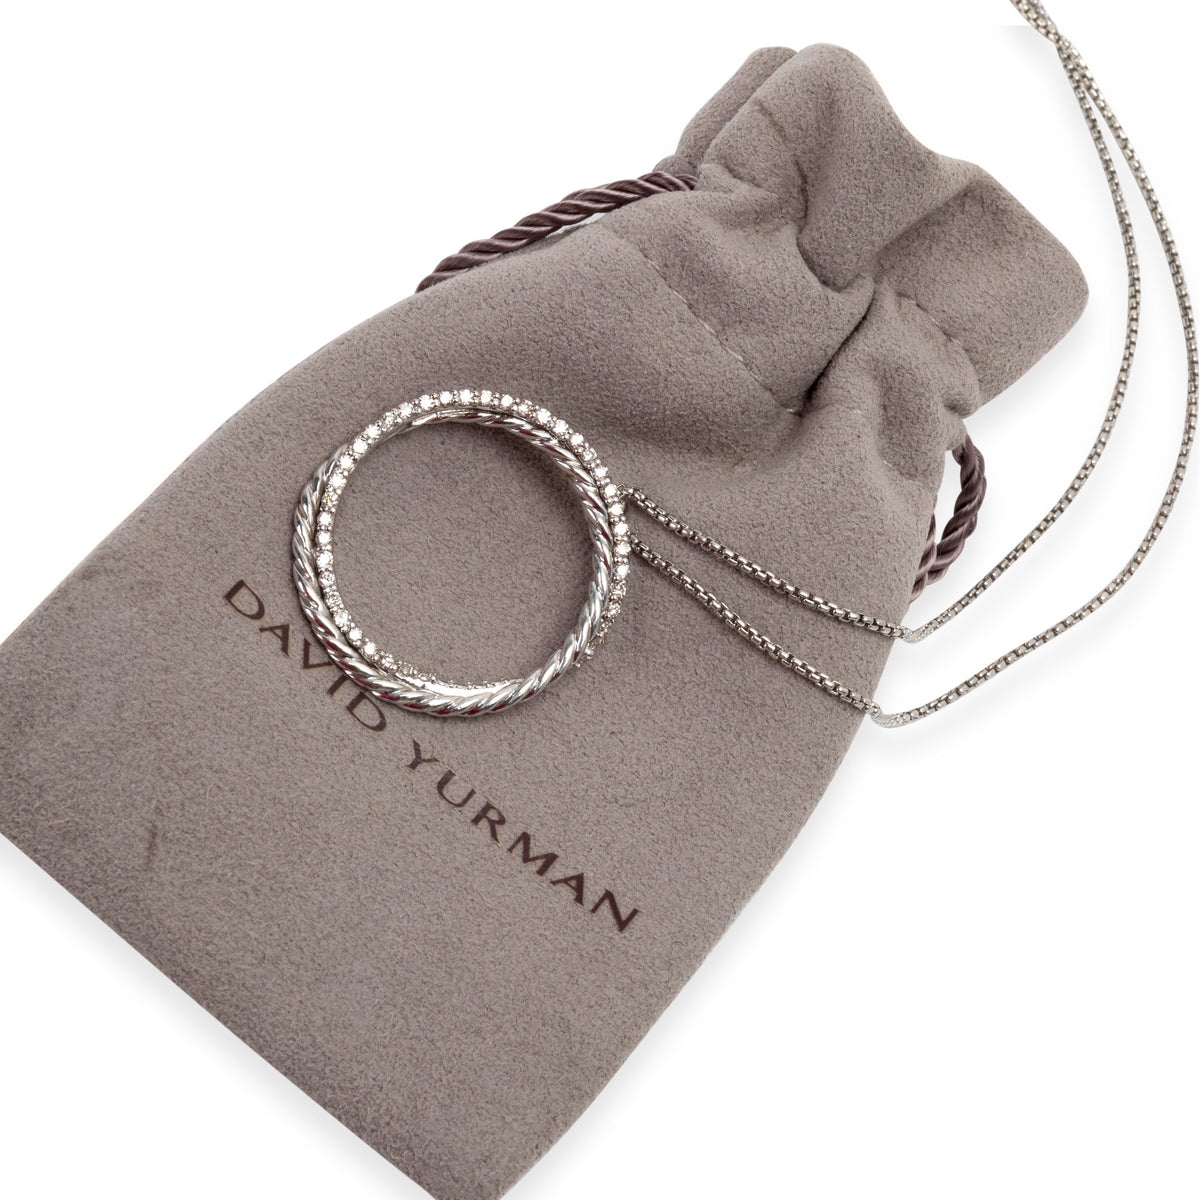 David Yurman Diamond Circle Pendant in 14K White Gold/Sterling Silver 0.4 CTW